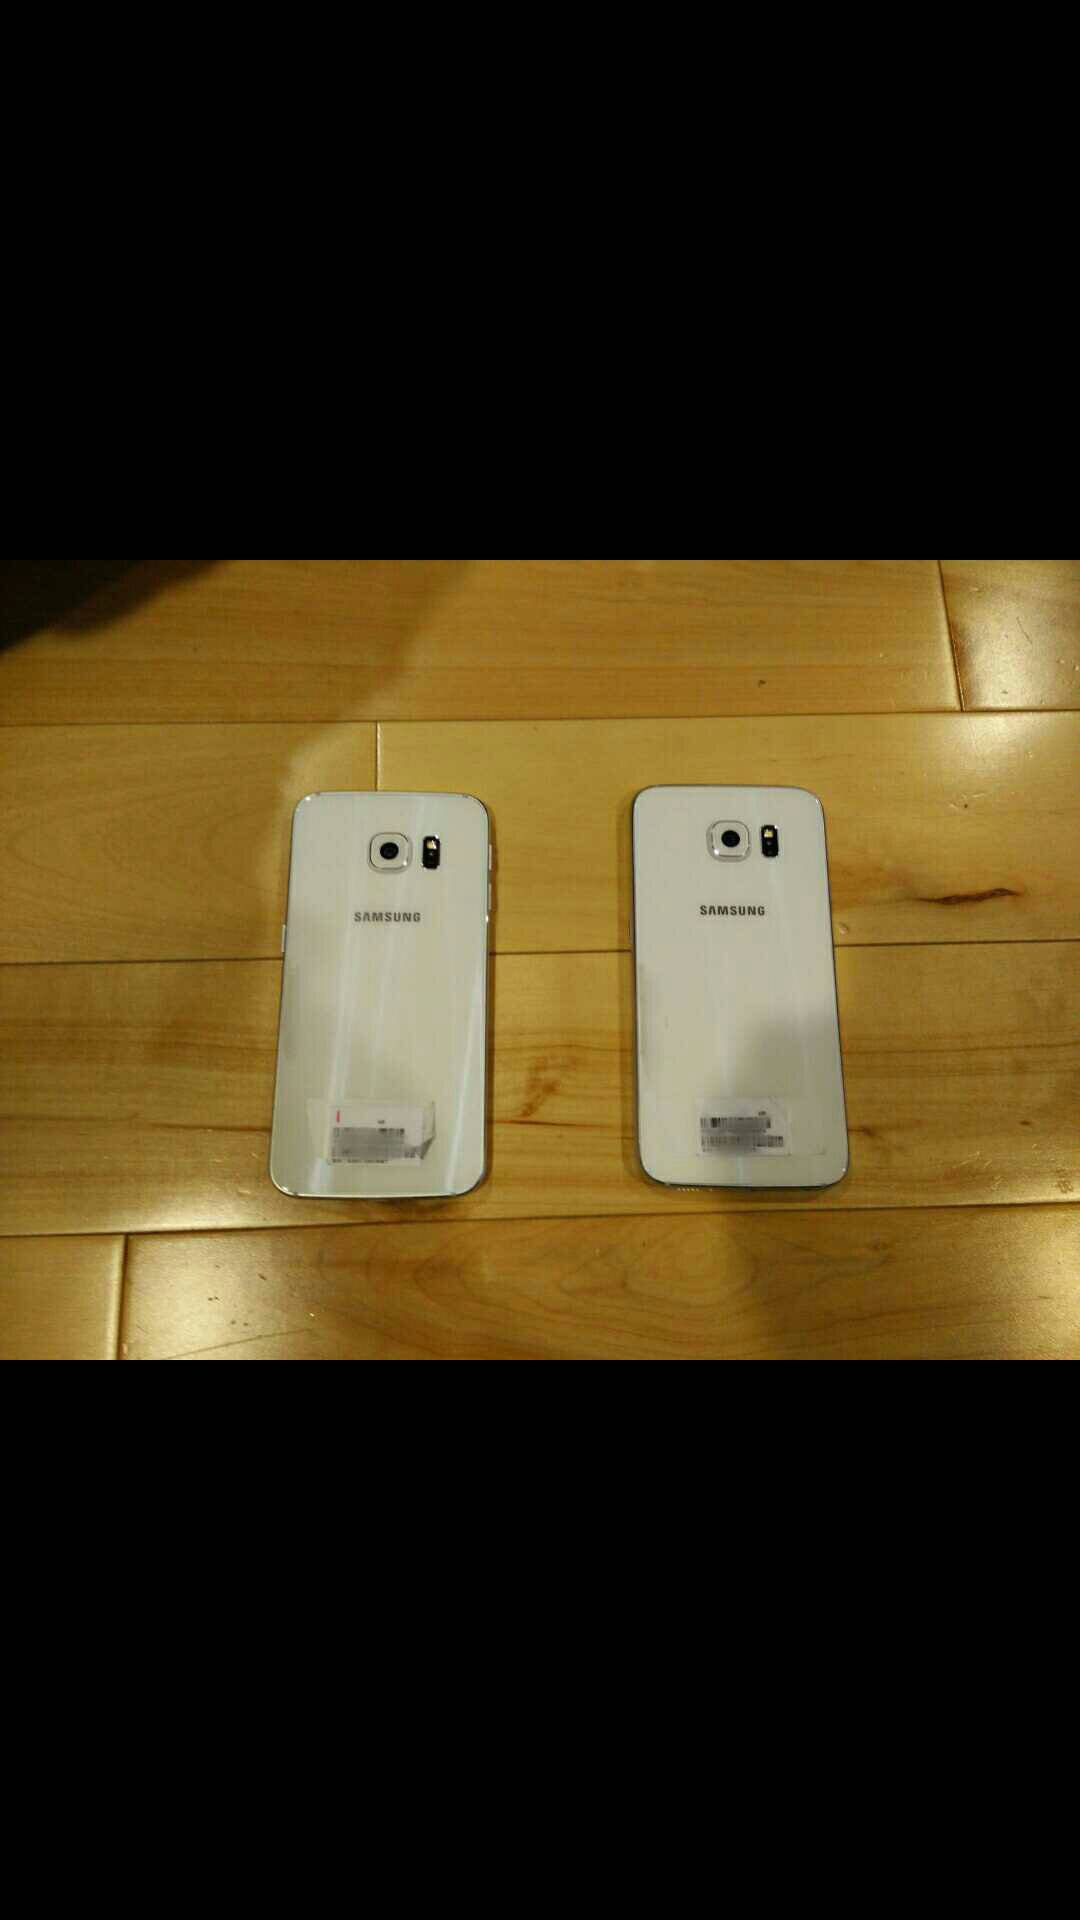 Samsung Galaxy S6 and S6 Edge leak 2